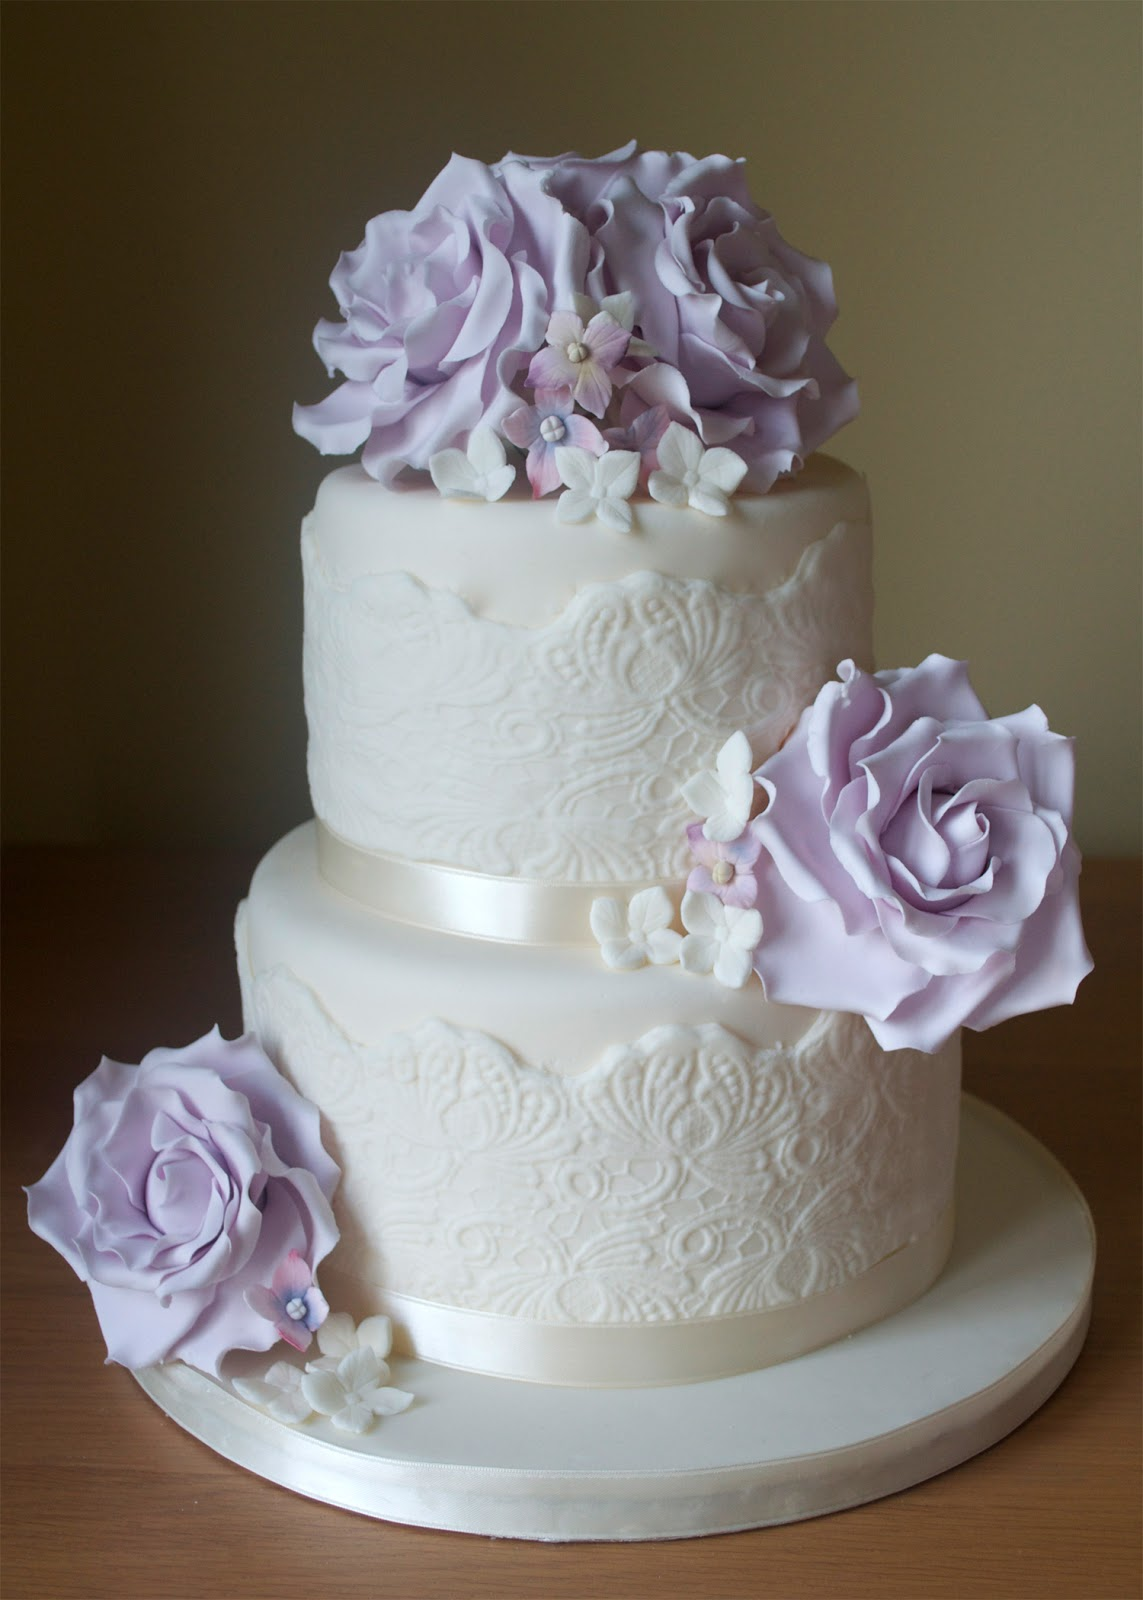 Wedding Cake Pictures With Roses : Sugar Ruffles, Elegant Wedding Cakes. Barrow in Furness ...